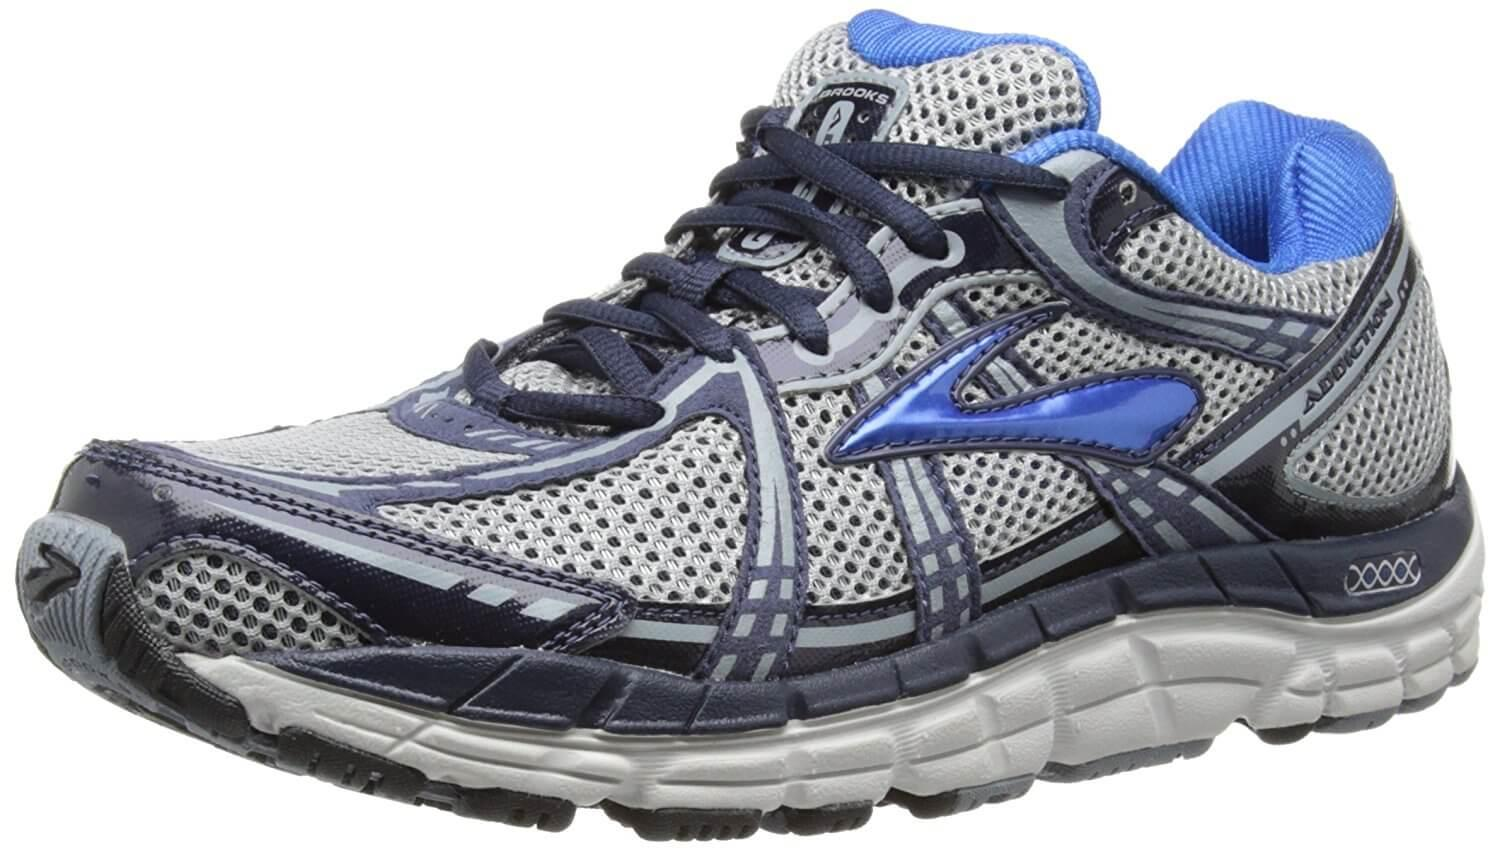 Brooks Addiction Running Shoe Review